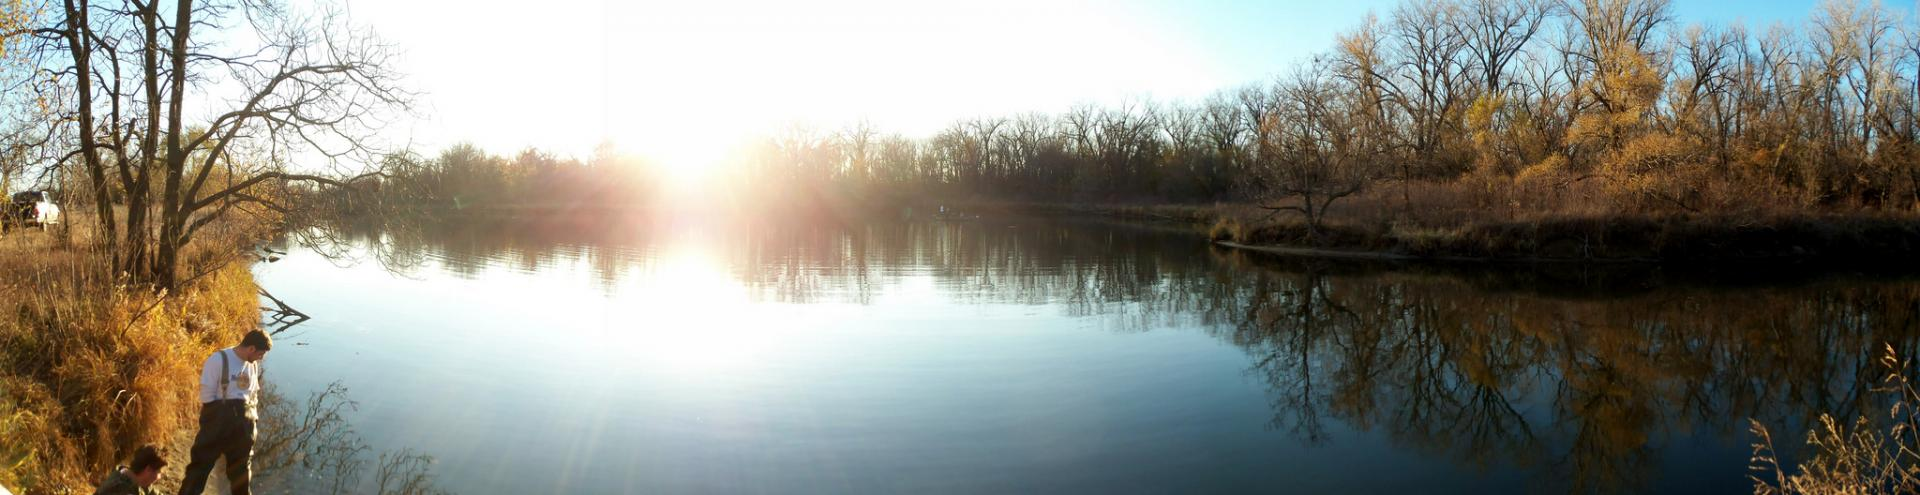 Peaceful sunset on a backwaters area of the Platte River near Ashland, Nebraska during during the fall of 2011